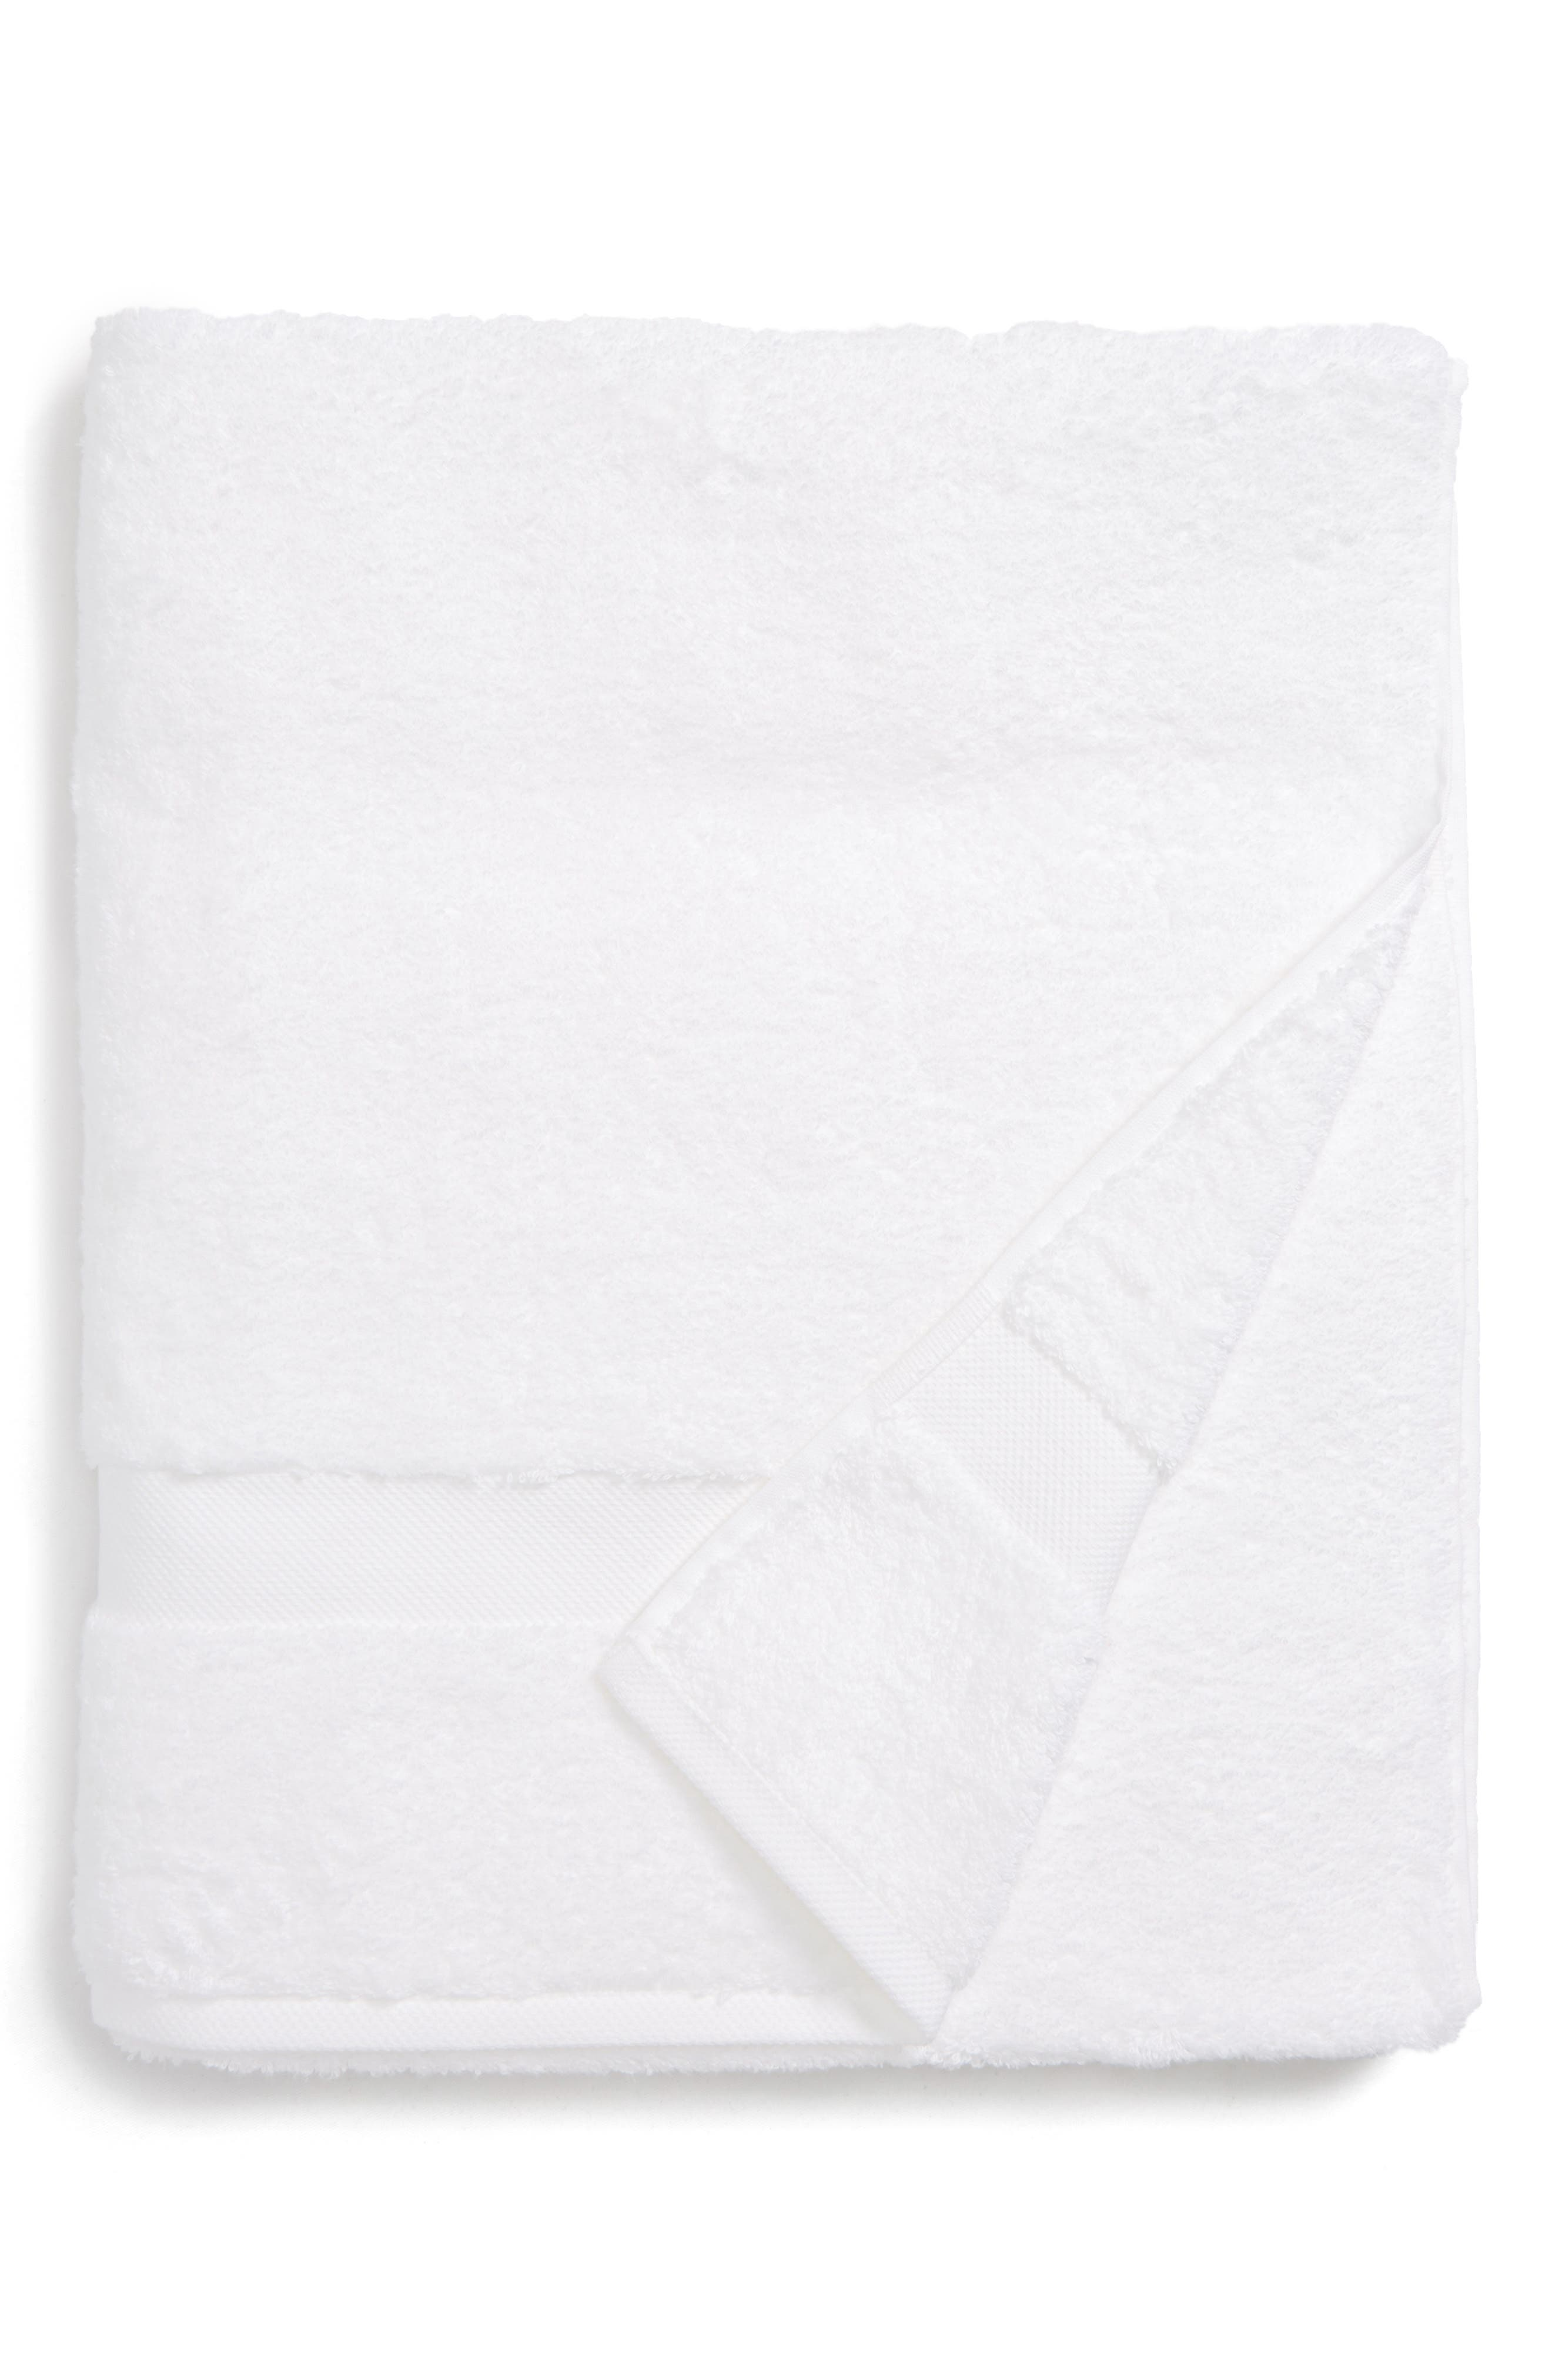 Lotus Bath Towel,                             Main thumbnail 1, color,                             White